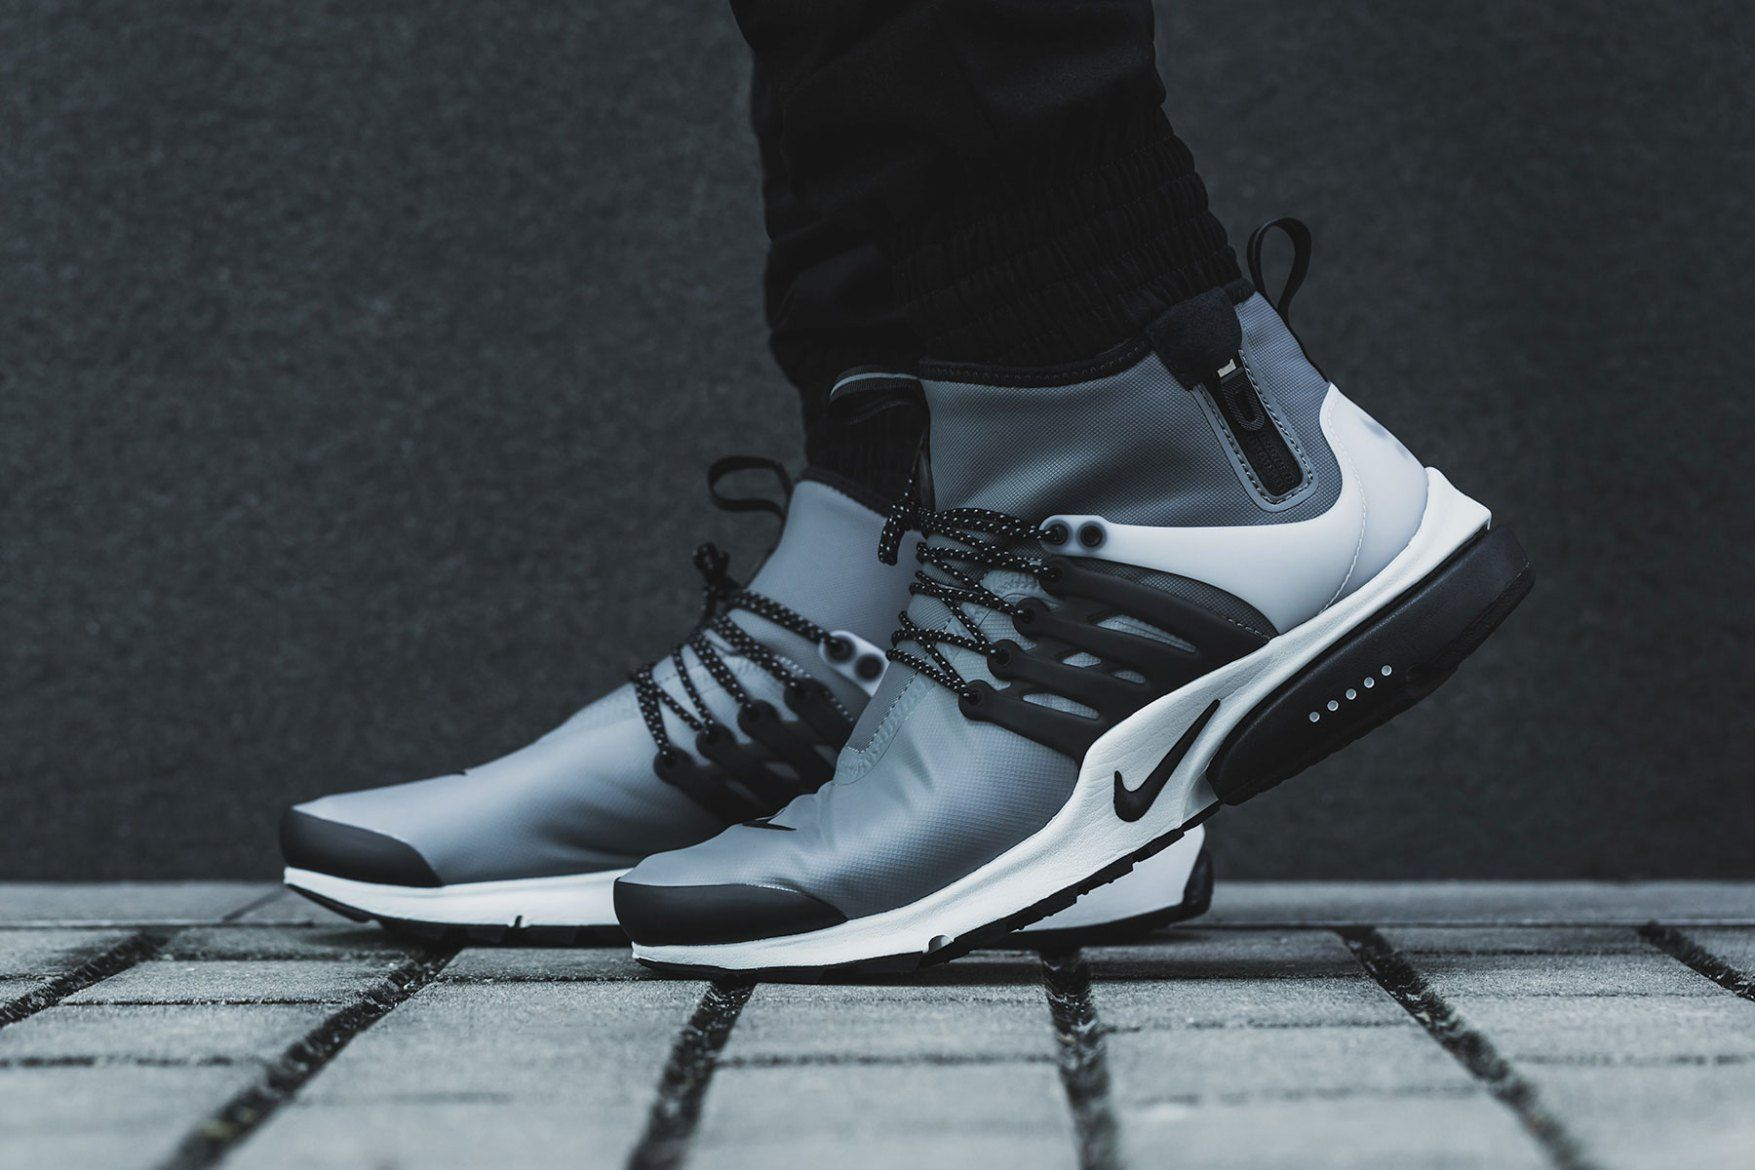 b67b5f9f735 Get a Closer Look at the Nike Air Presto Mid Utility s Weatherized ...